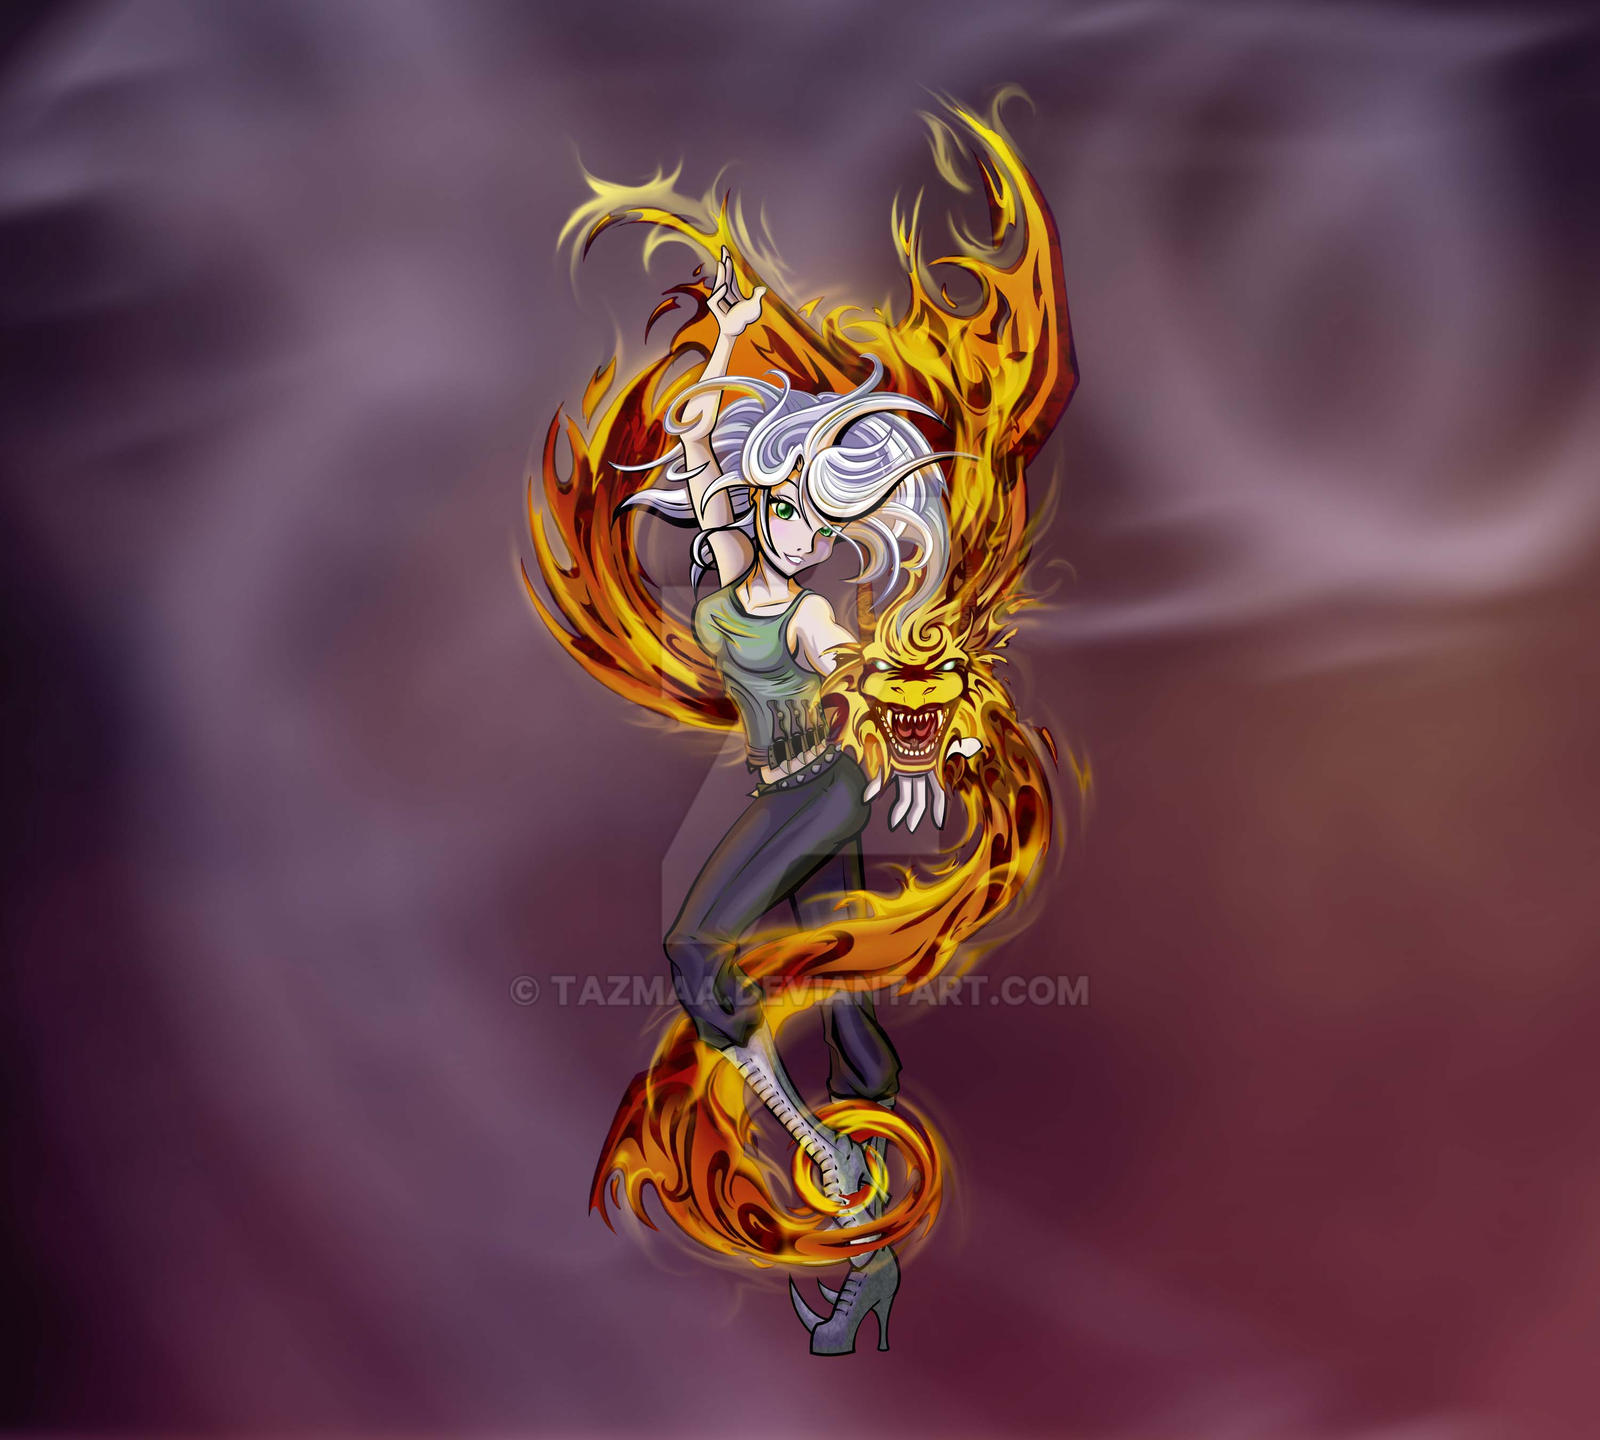 Fantasy Fire Dragon by Tazmaa